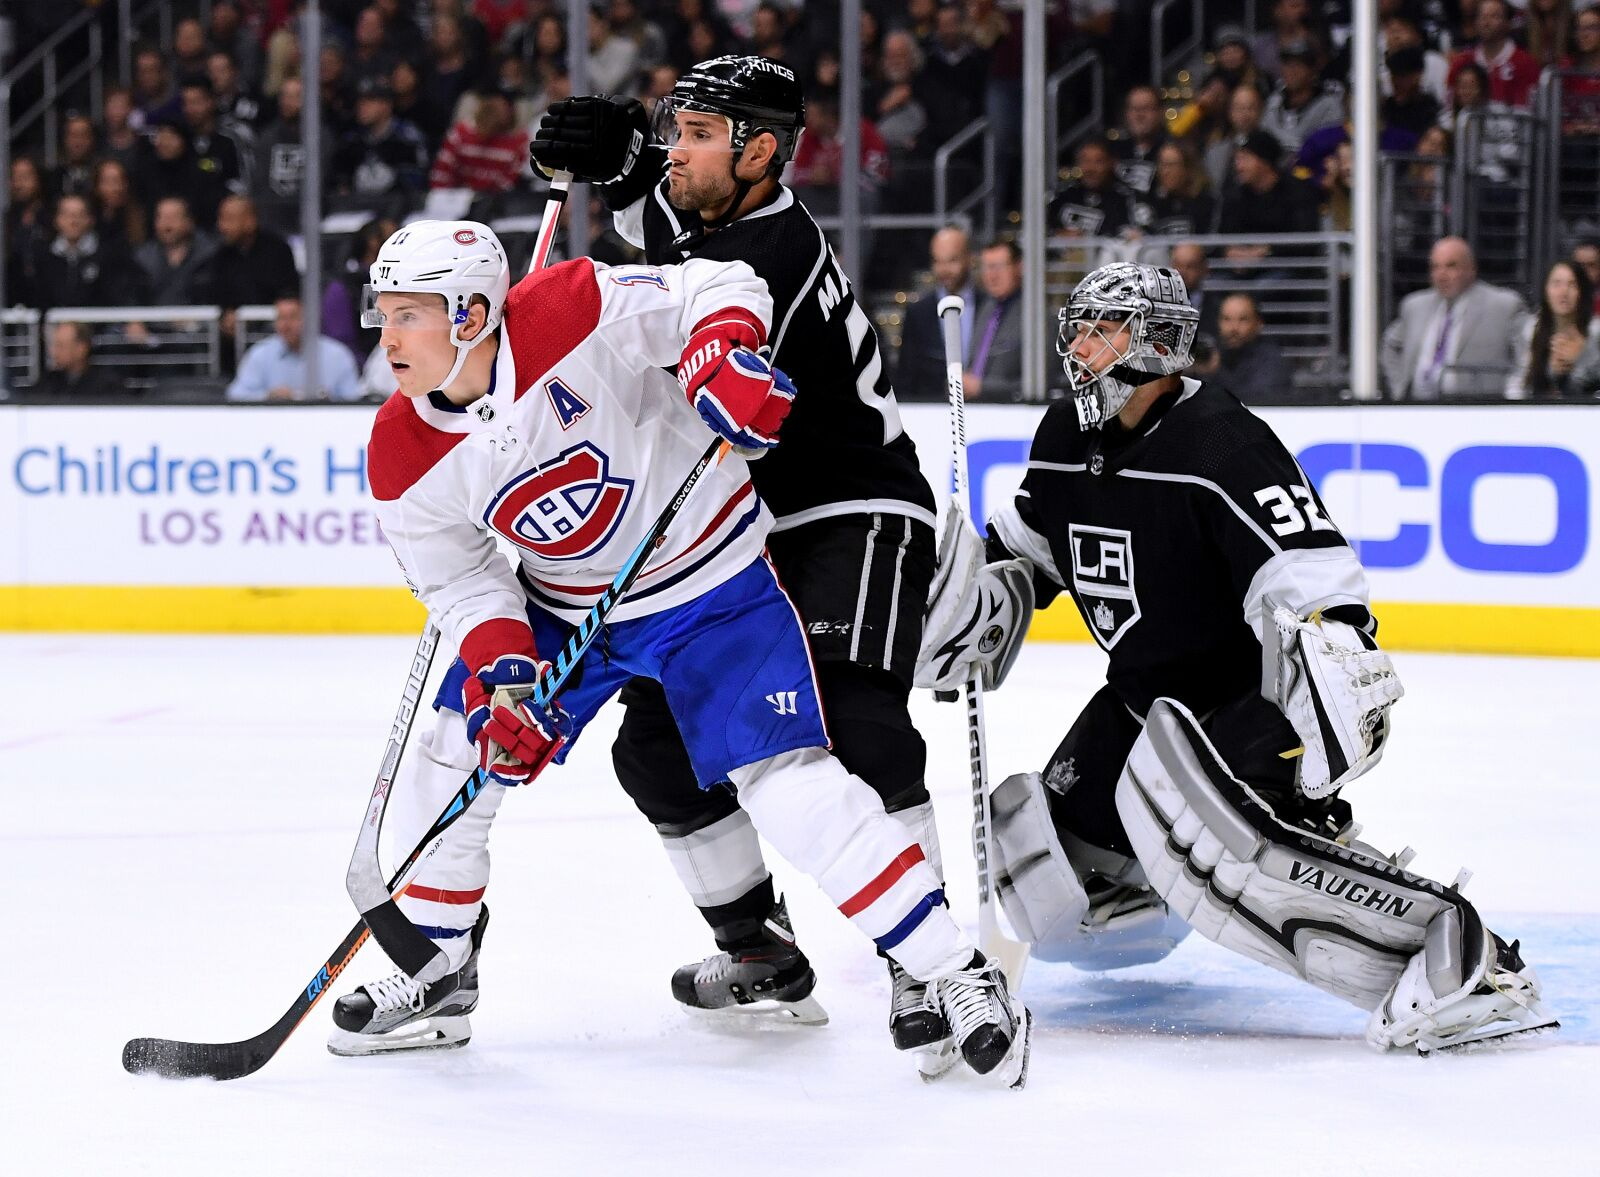 The Montreal Canadiens road trip begins with a new (Jordan) Weal